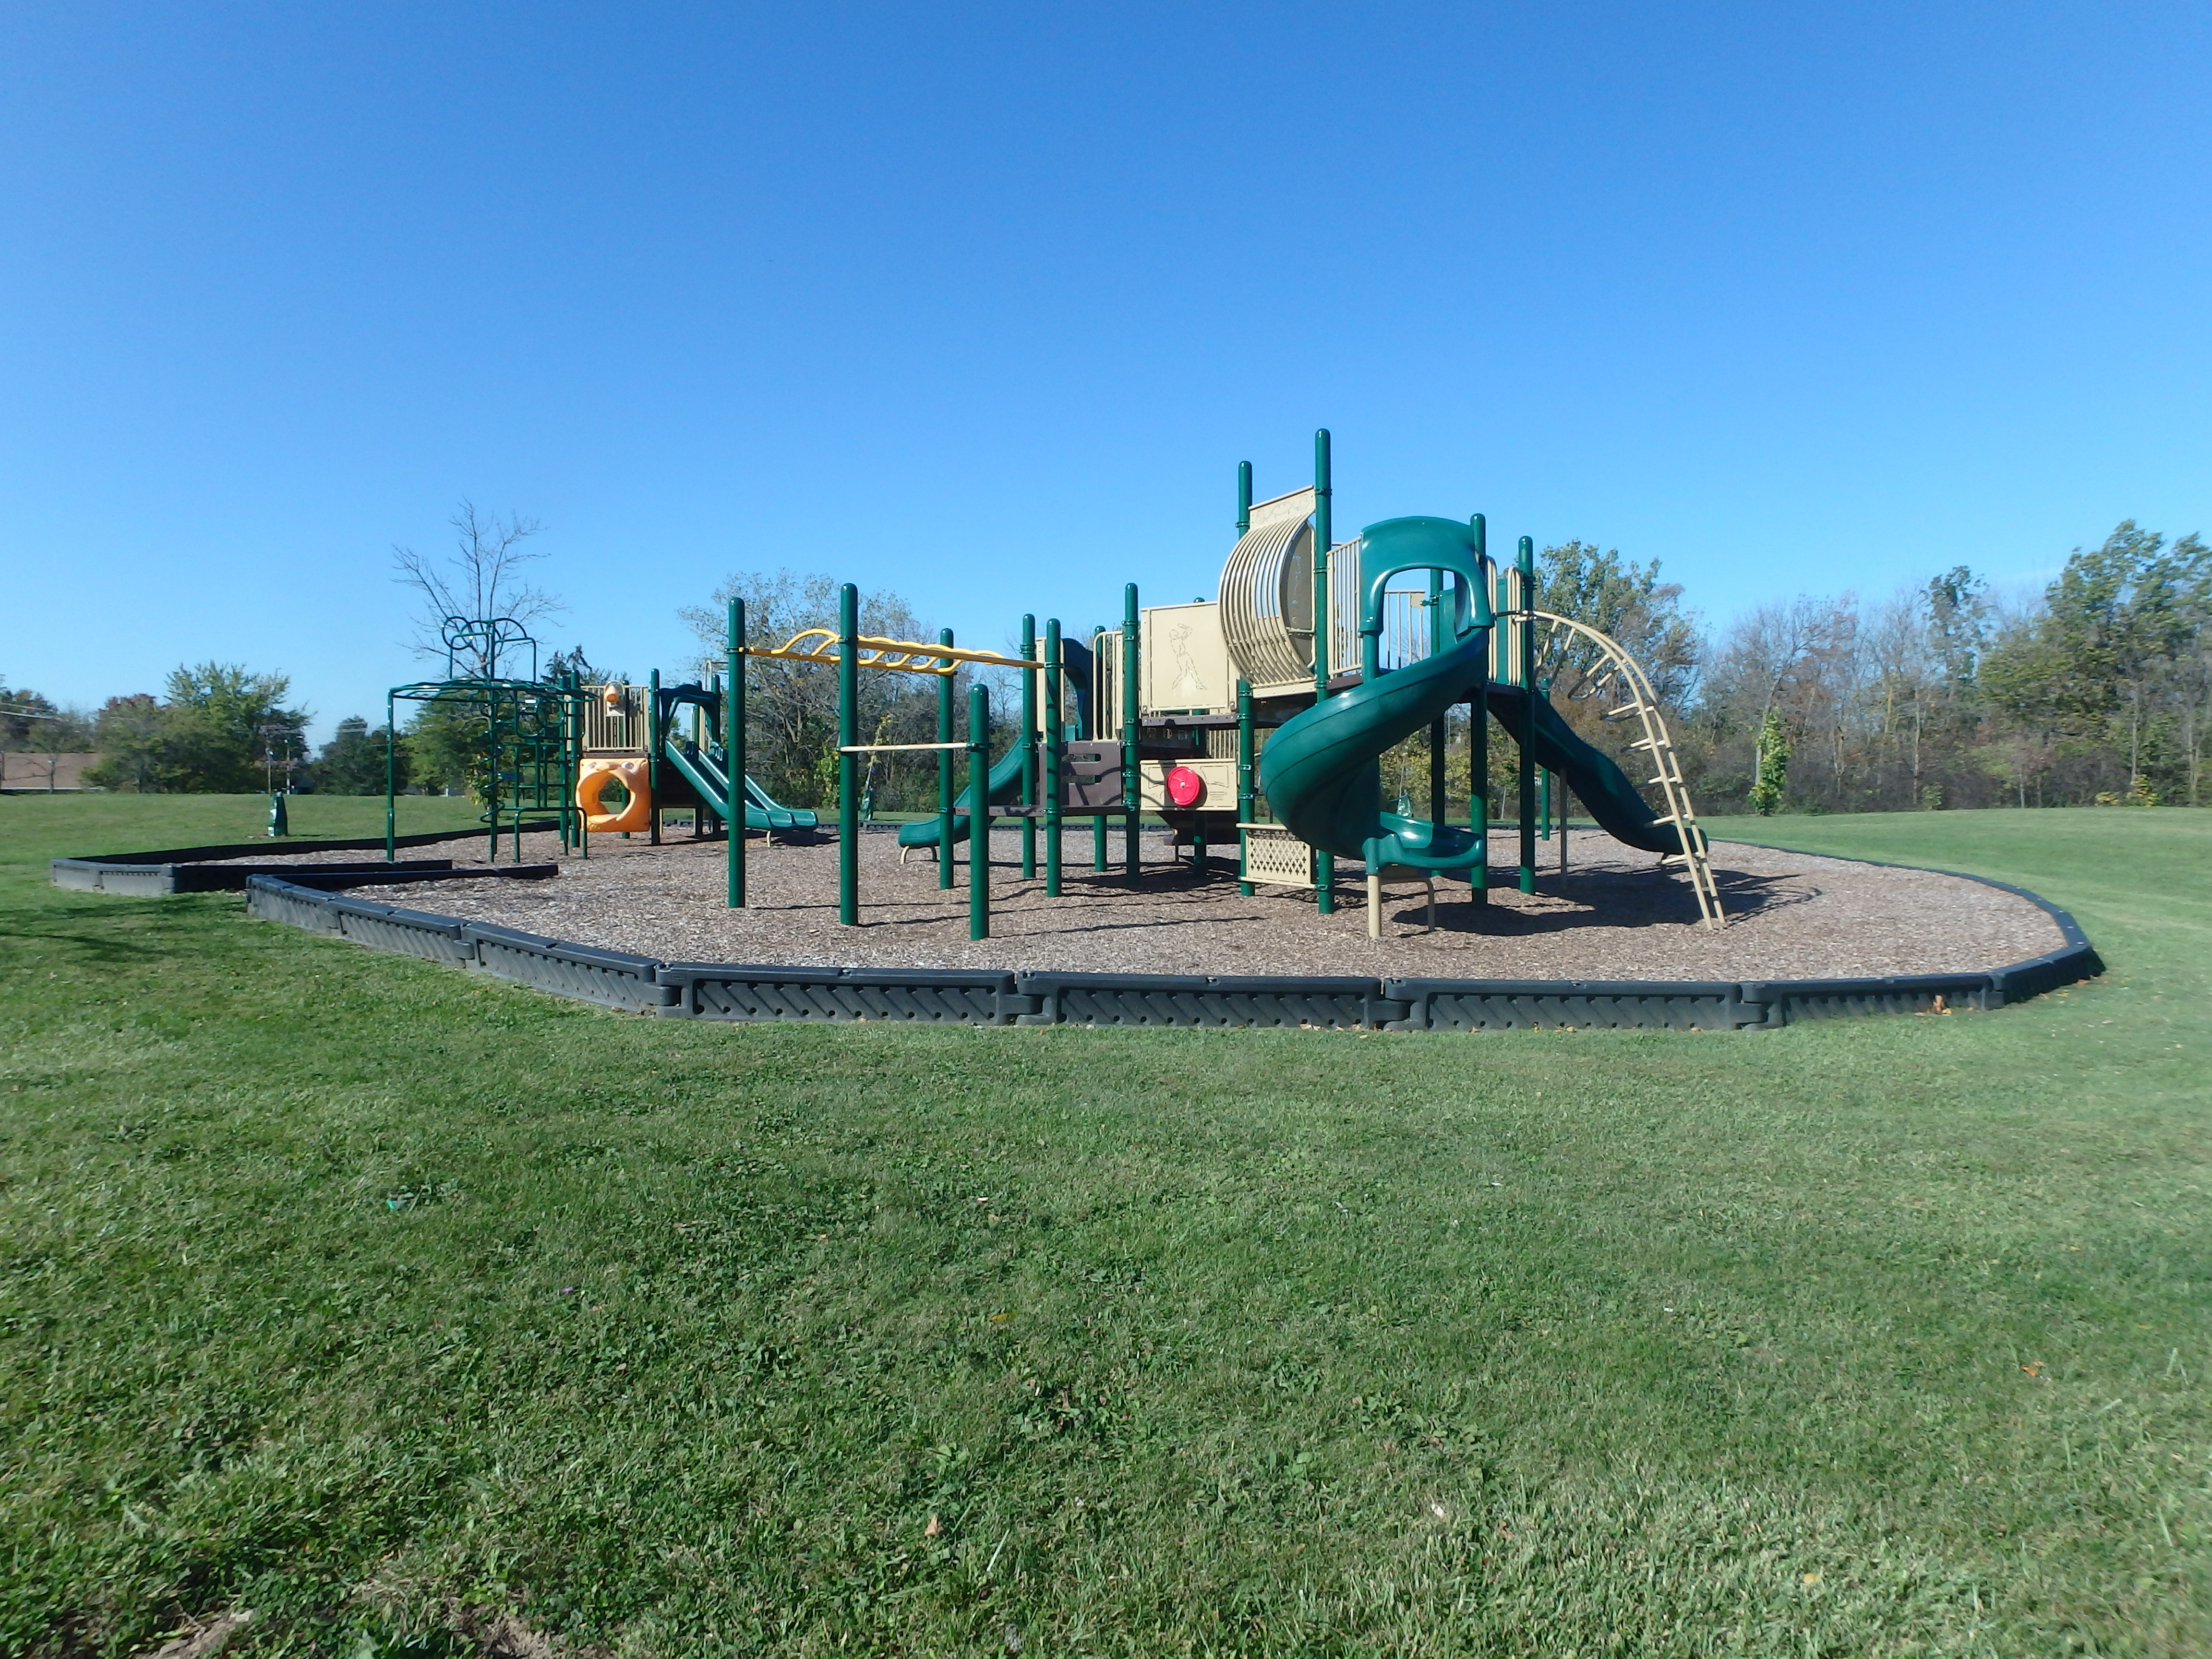 G:\!PARKS CEMETERIES FORESTRY AND HORTICULTURE\Parks-Inventory\Play-Equipment\Secord Woods Park\PA184252.JPG